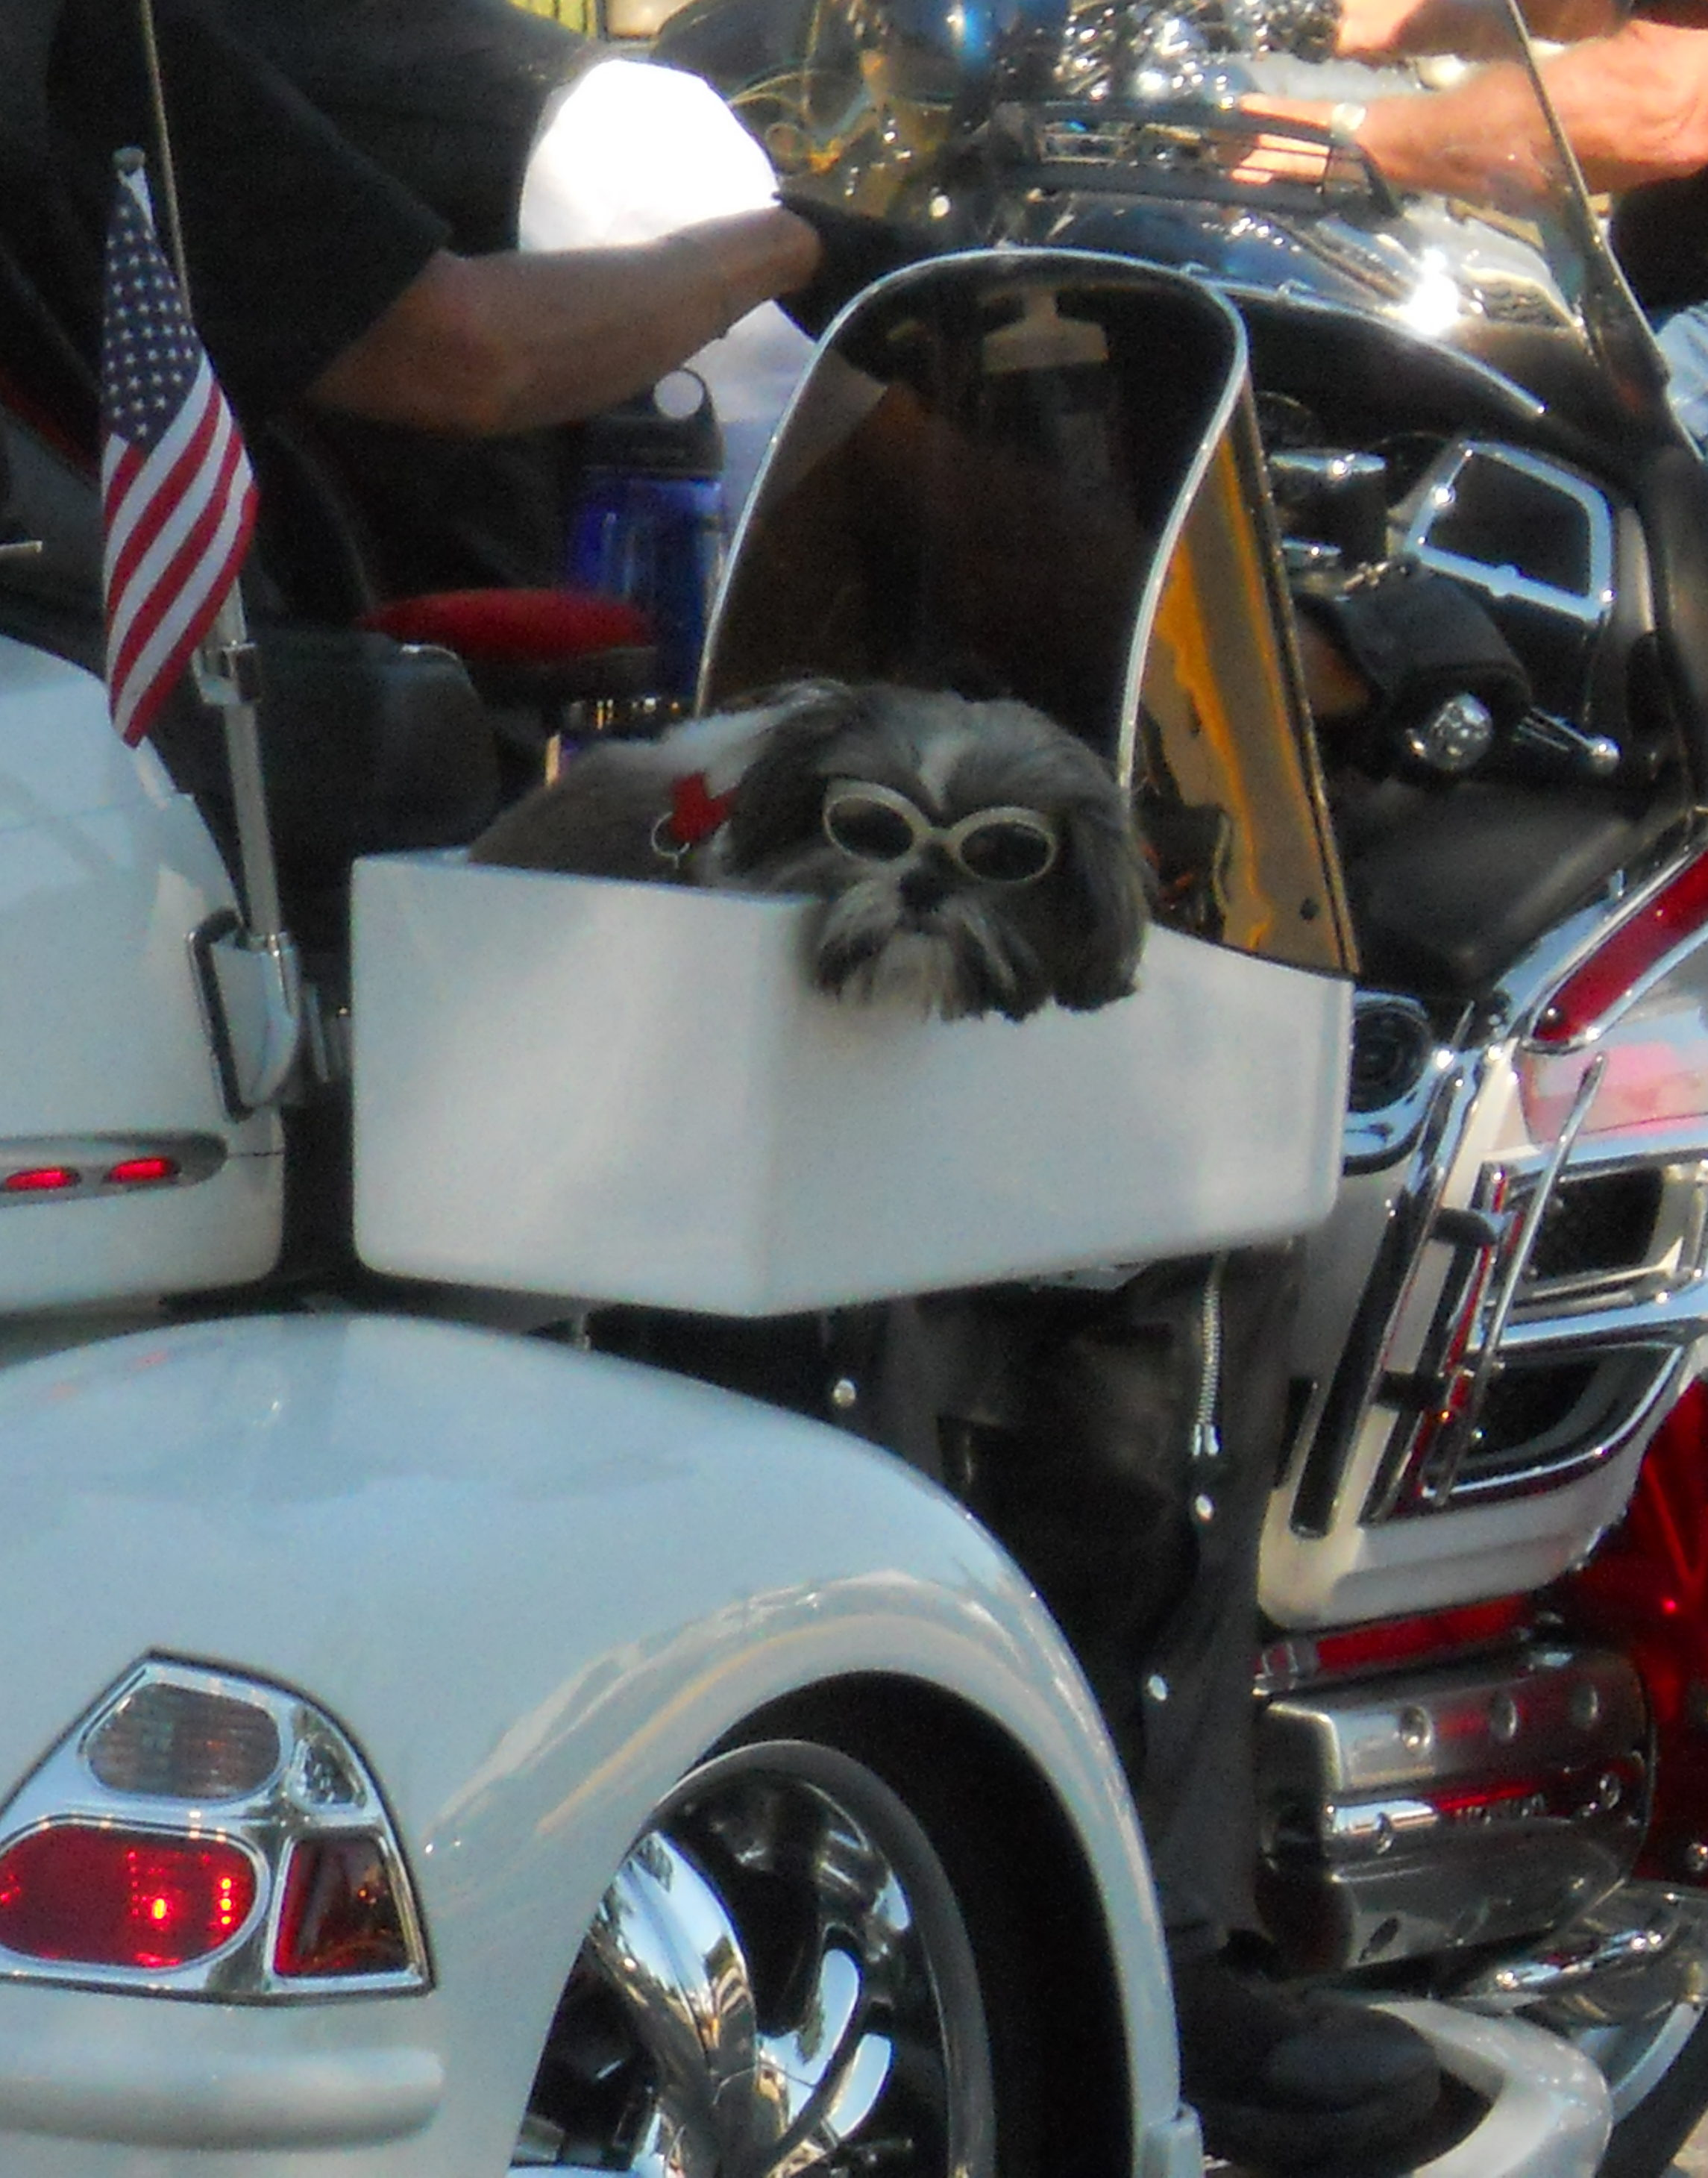 Sturgis Motorcycle Rally Sturgis, South Dakota. Little dog wearing sunglasses in motorcycle sidecar.